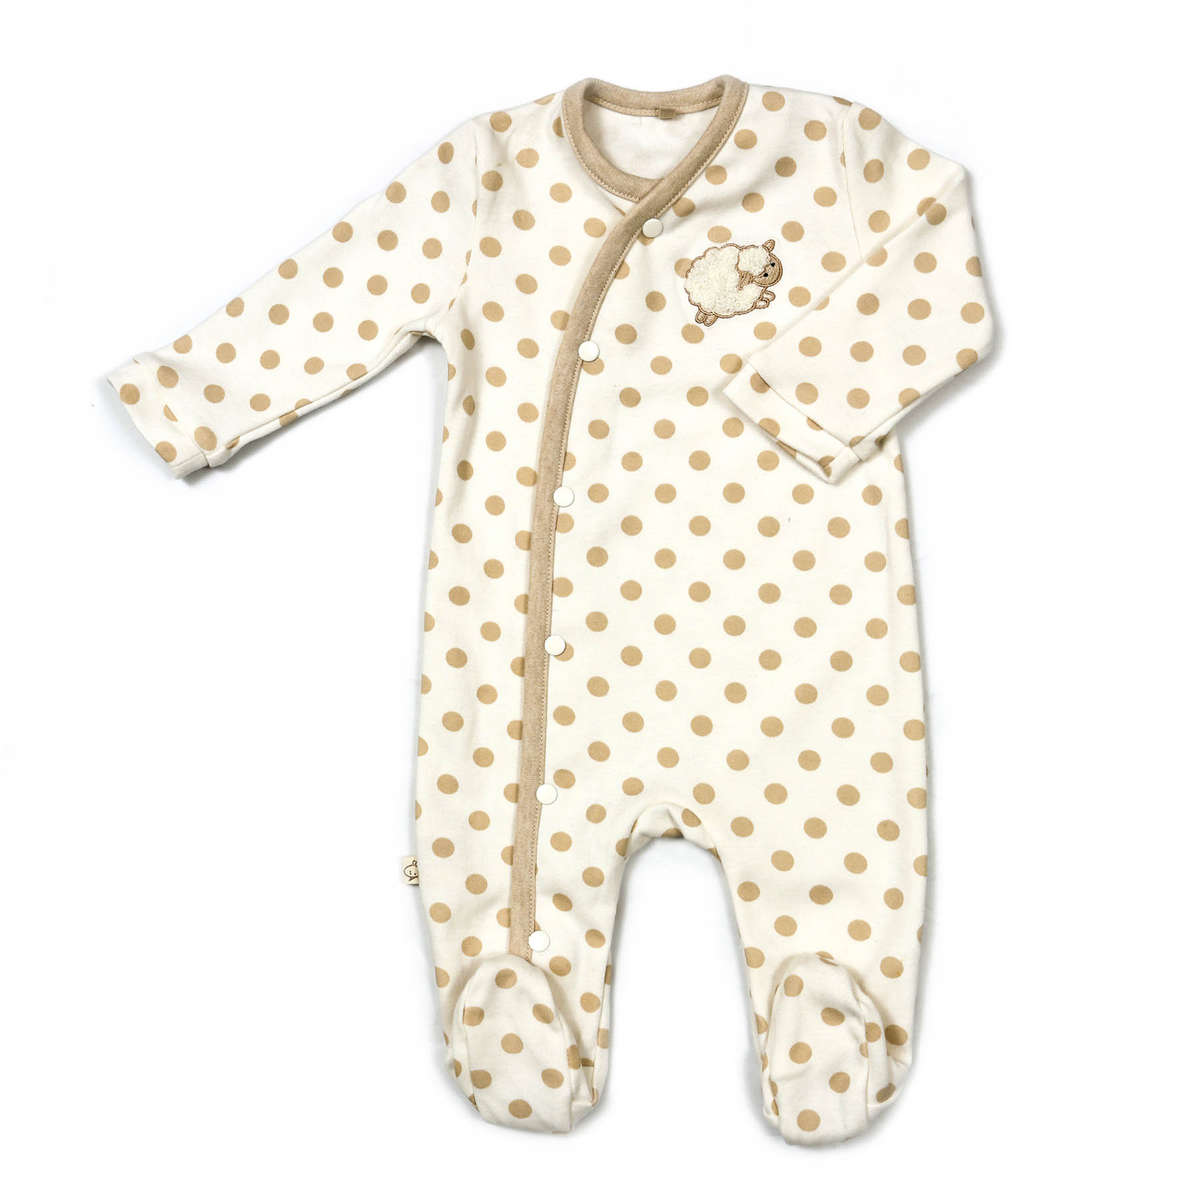 Little Chic Sheep Organic Cotton Long Sleeved Sleepsuit - All Over Beige Polka Dot Print